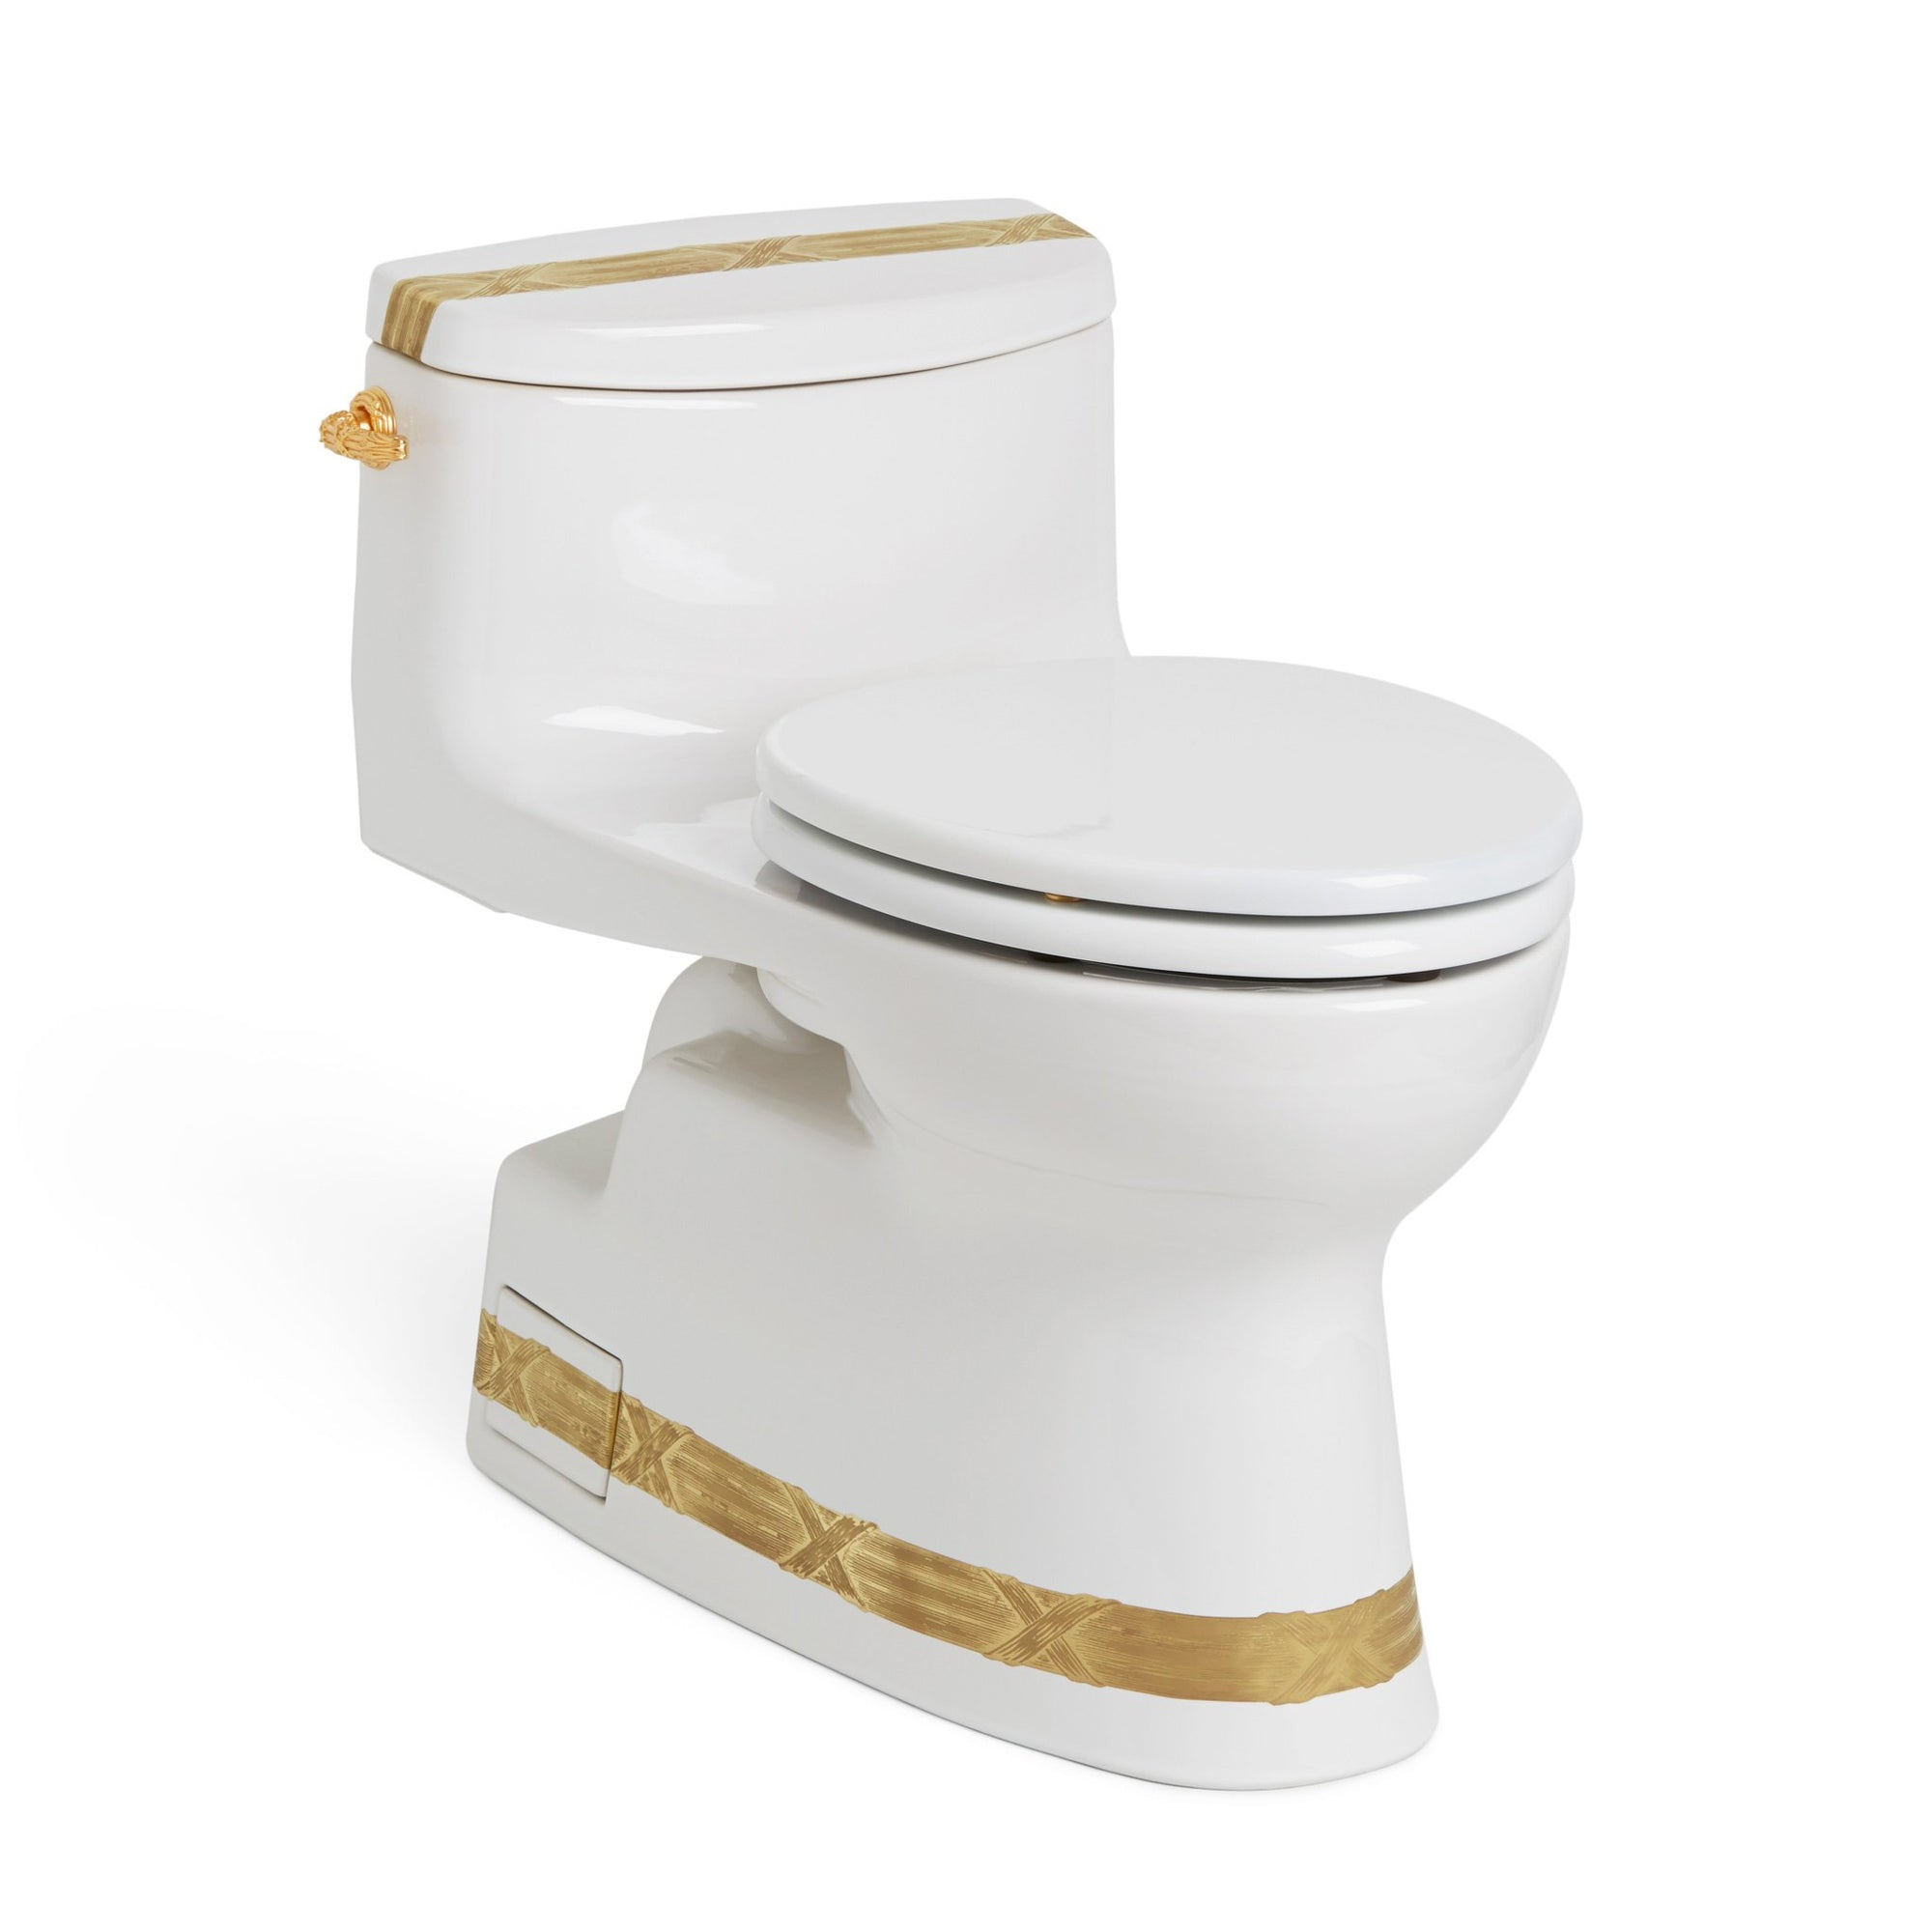 0234EL-3EN-G-WH Sherle Wagner International Banded Burnished Gold Ribbon & Reed on White Ceramic Toilet